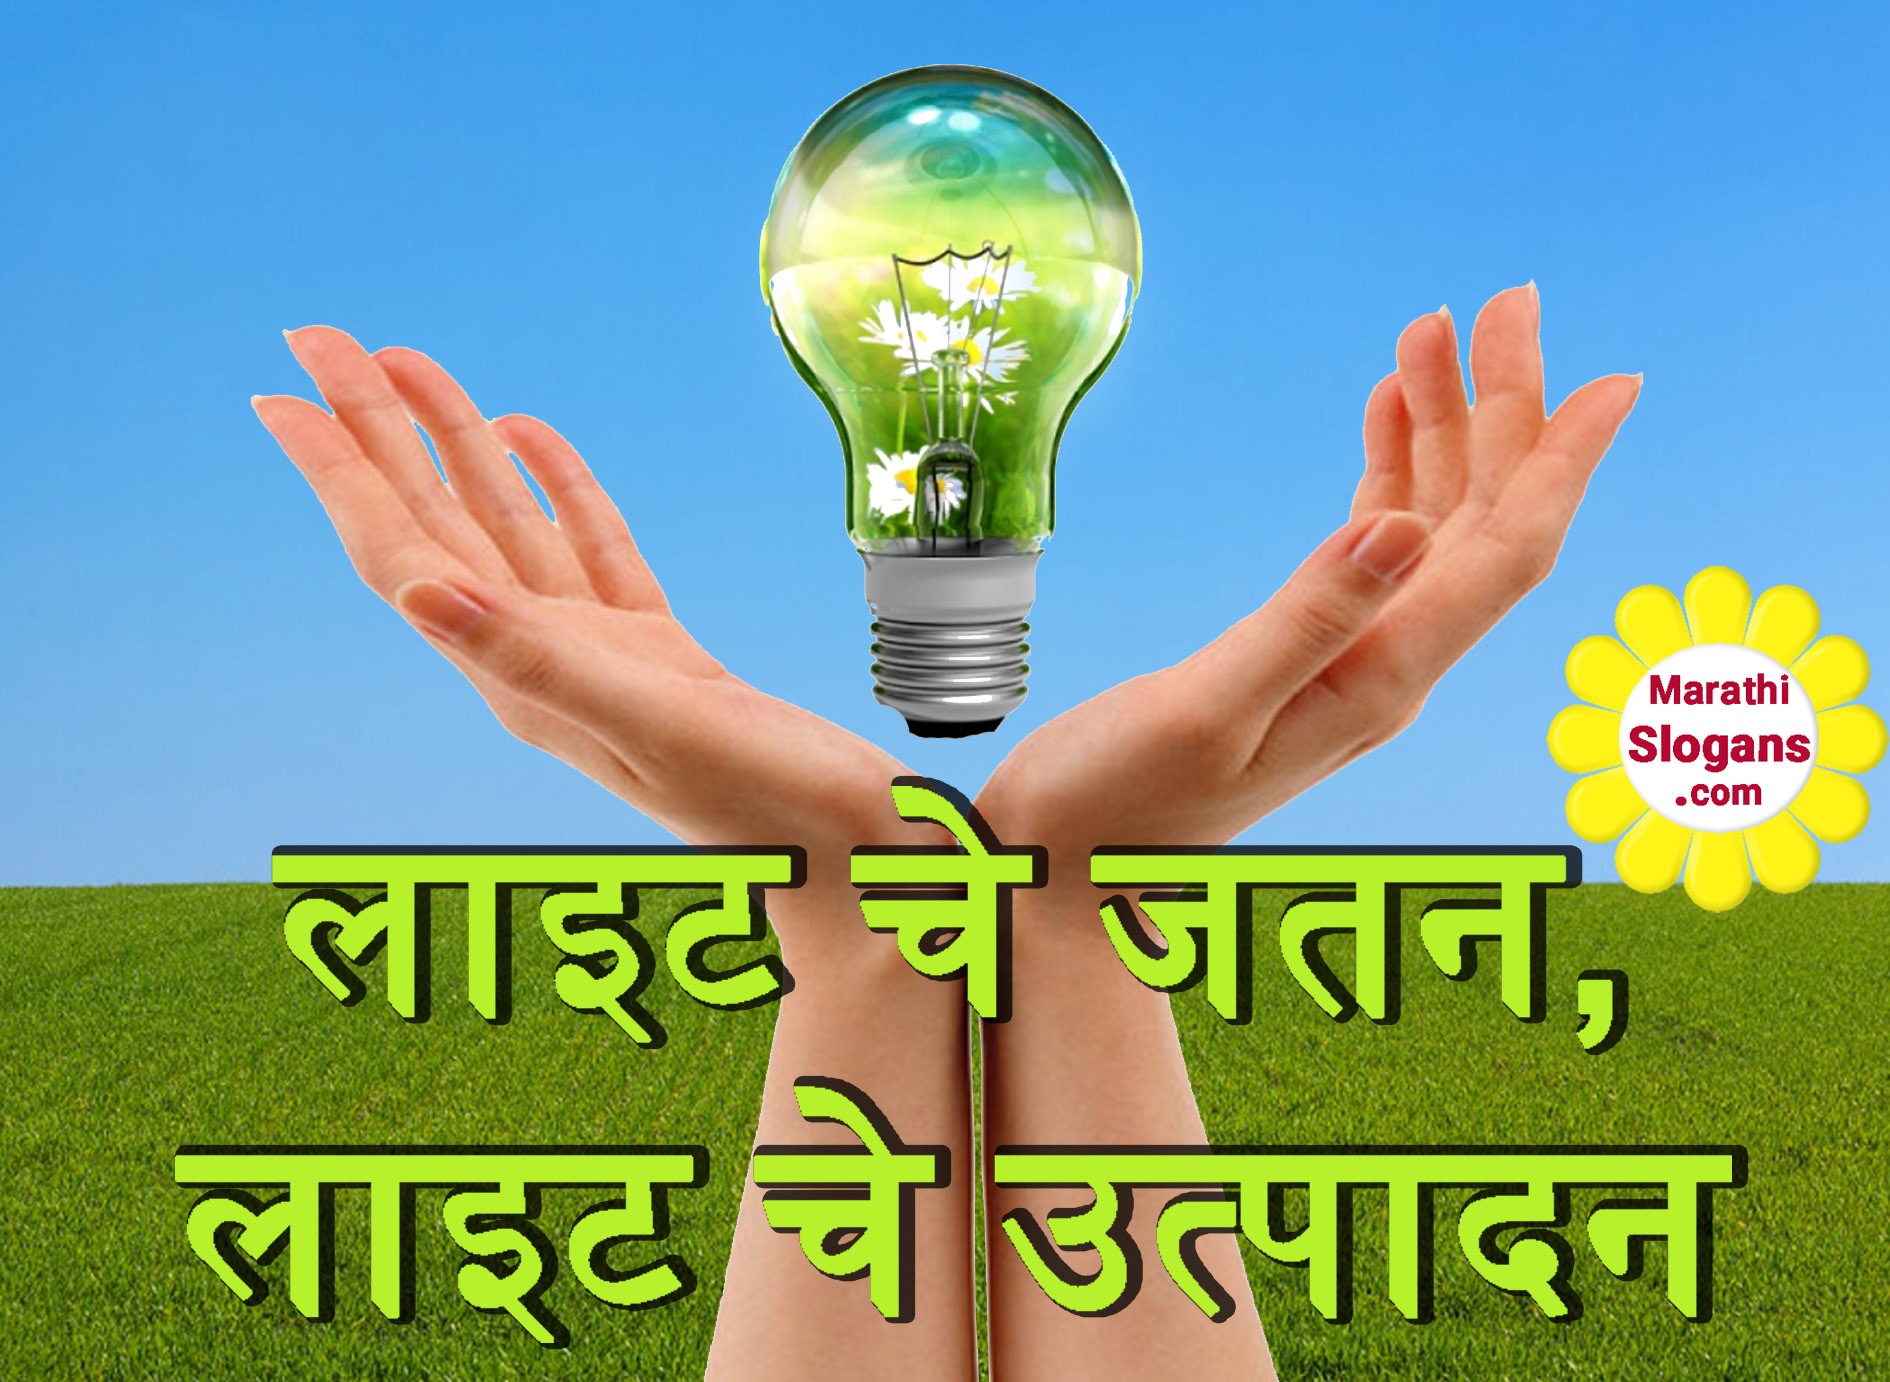 Energy conservation pictures slogan 100 Best Environmental Slogans, Posters and quot;s